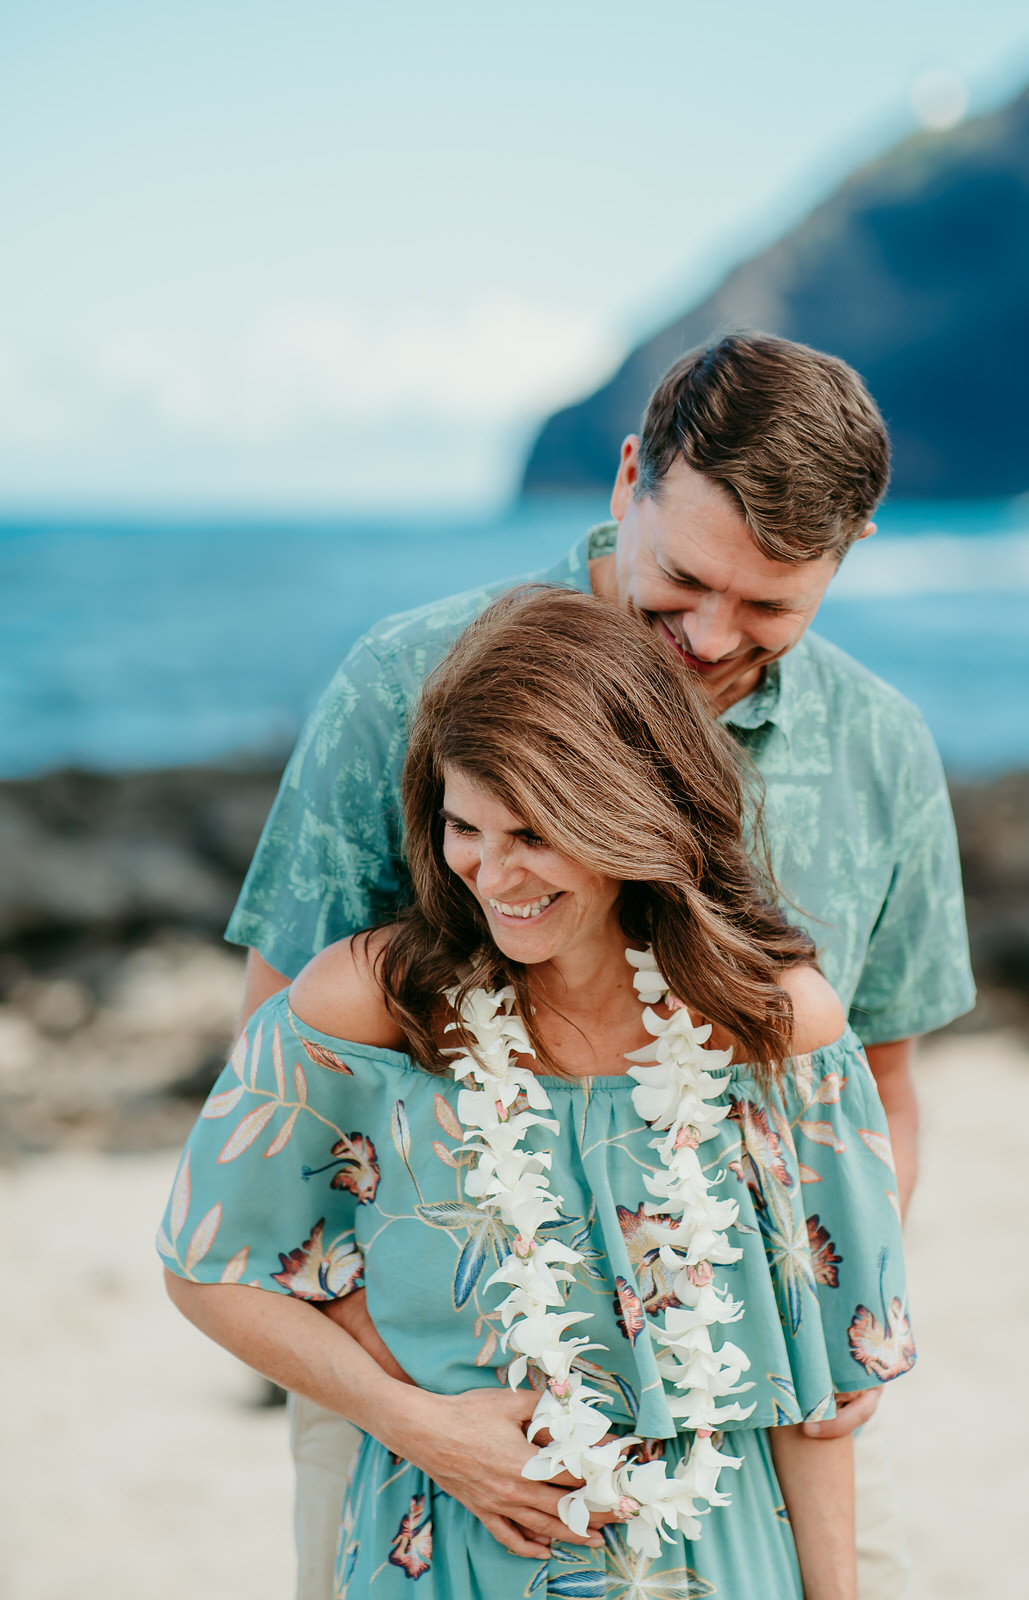 Campbell Family Vacation in Makapuu - Hawaii Family photographer - Ketino Photography -22.jpg